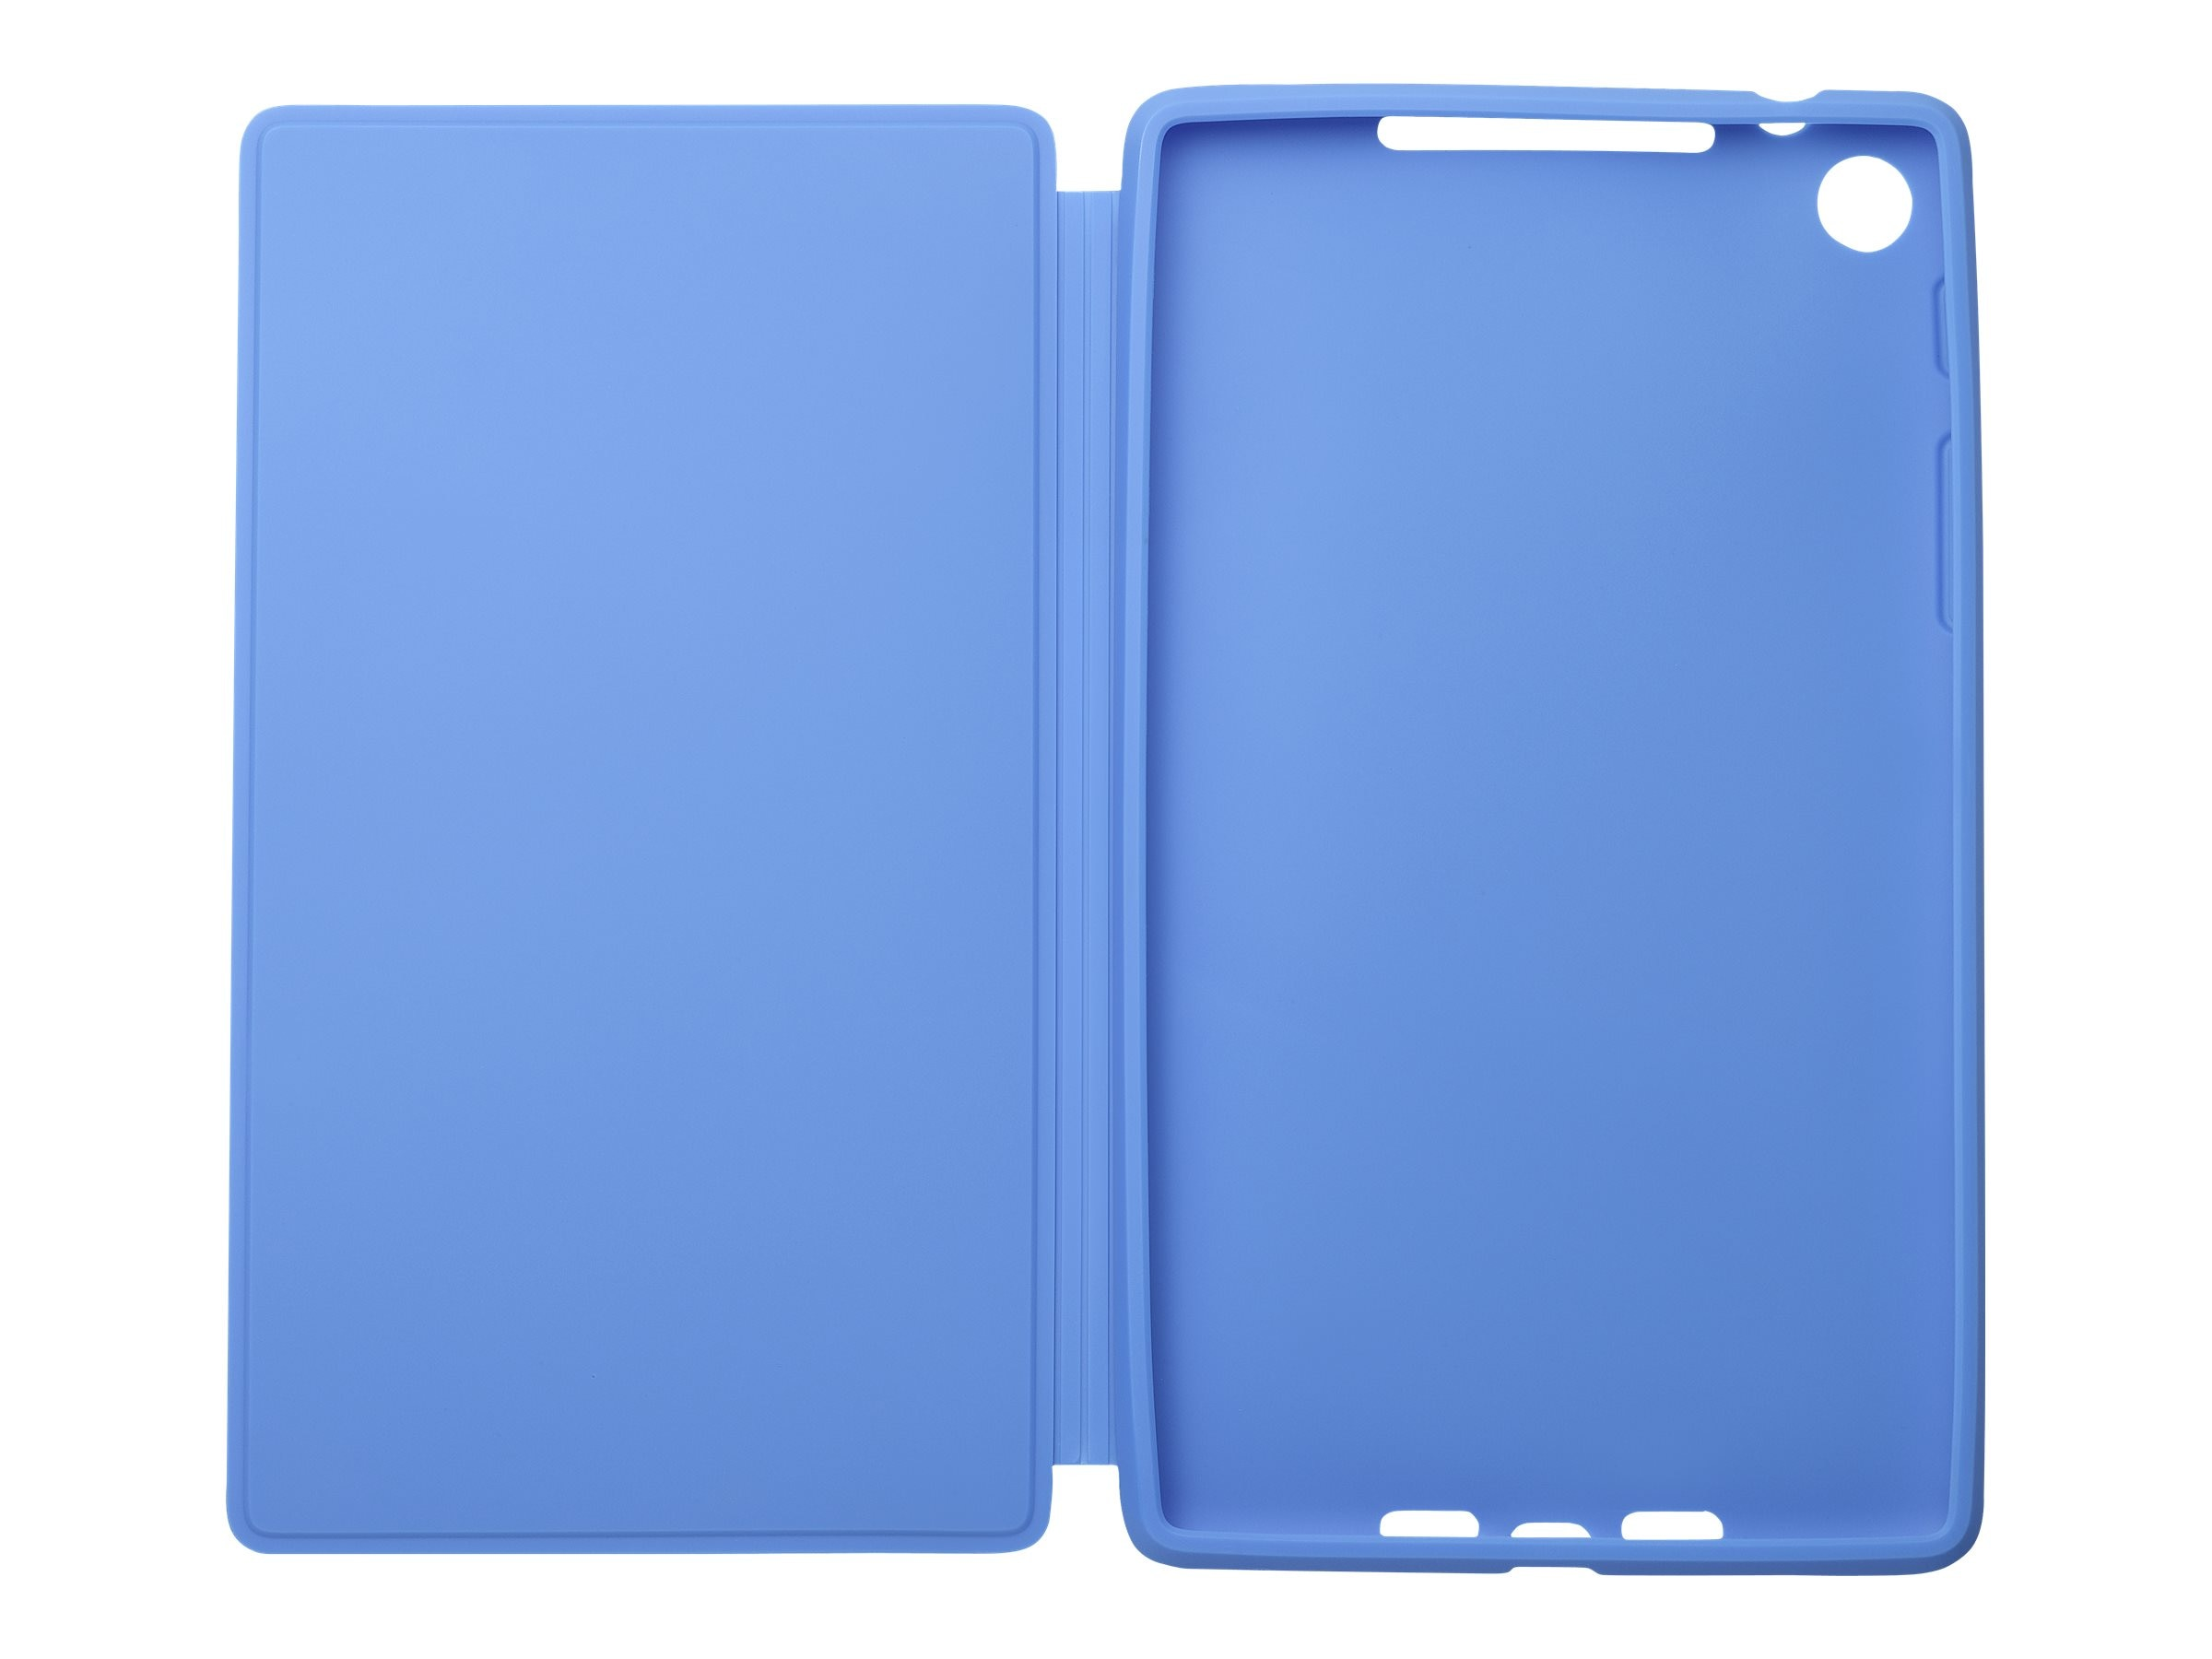 Asus Travel Cover for 2013 Nexus 7, Light Blue, 90-XB3TOKSL001N0-